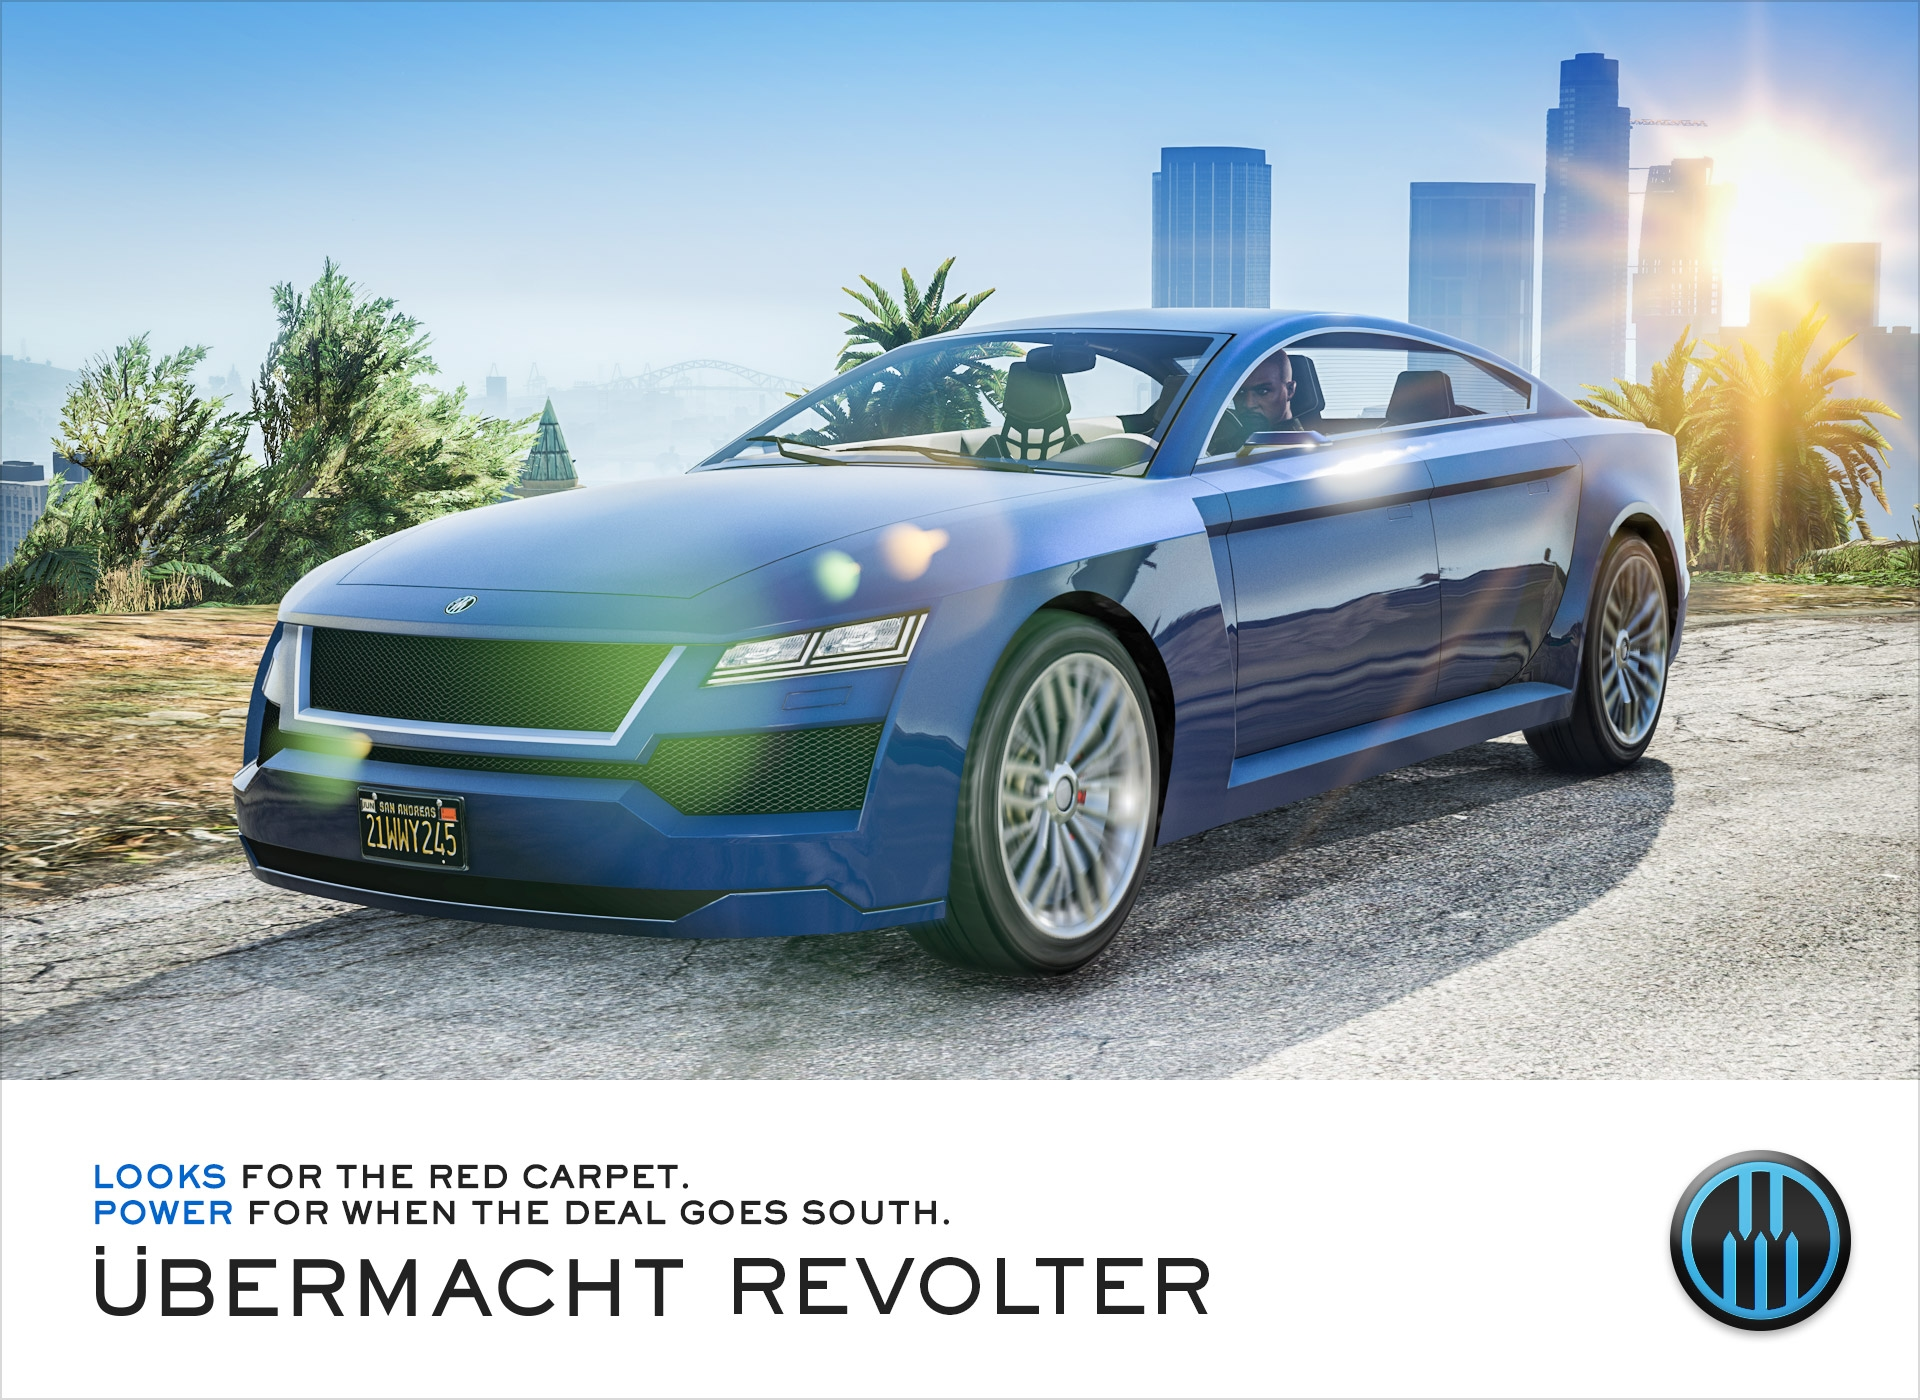 Ubermacht Revolter Now Available Plus Discounts on Mk II Weapon